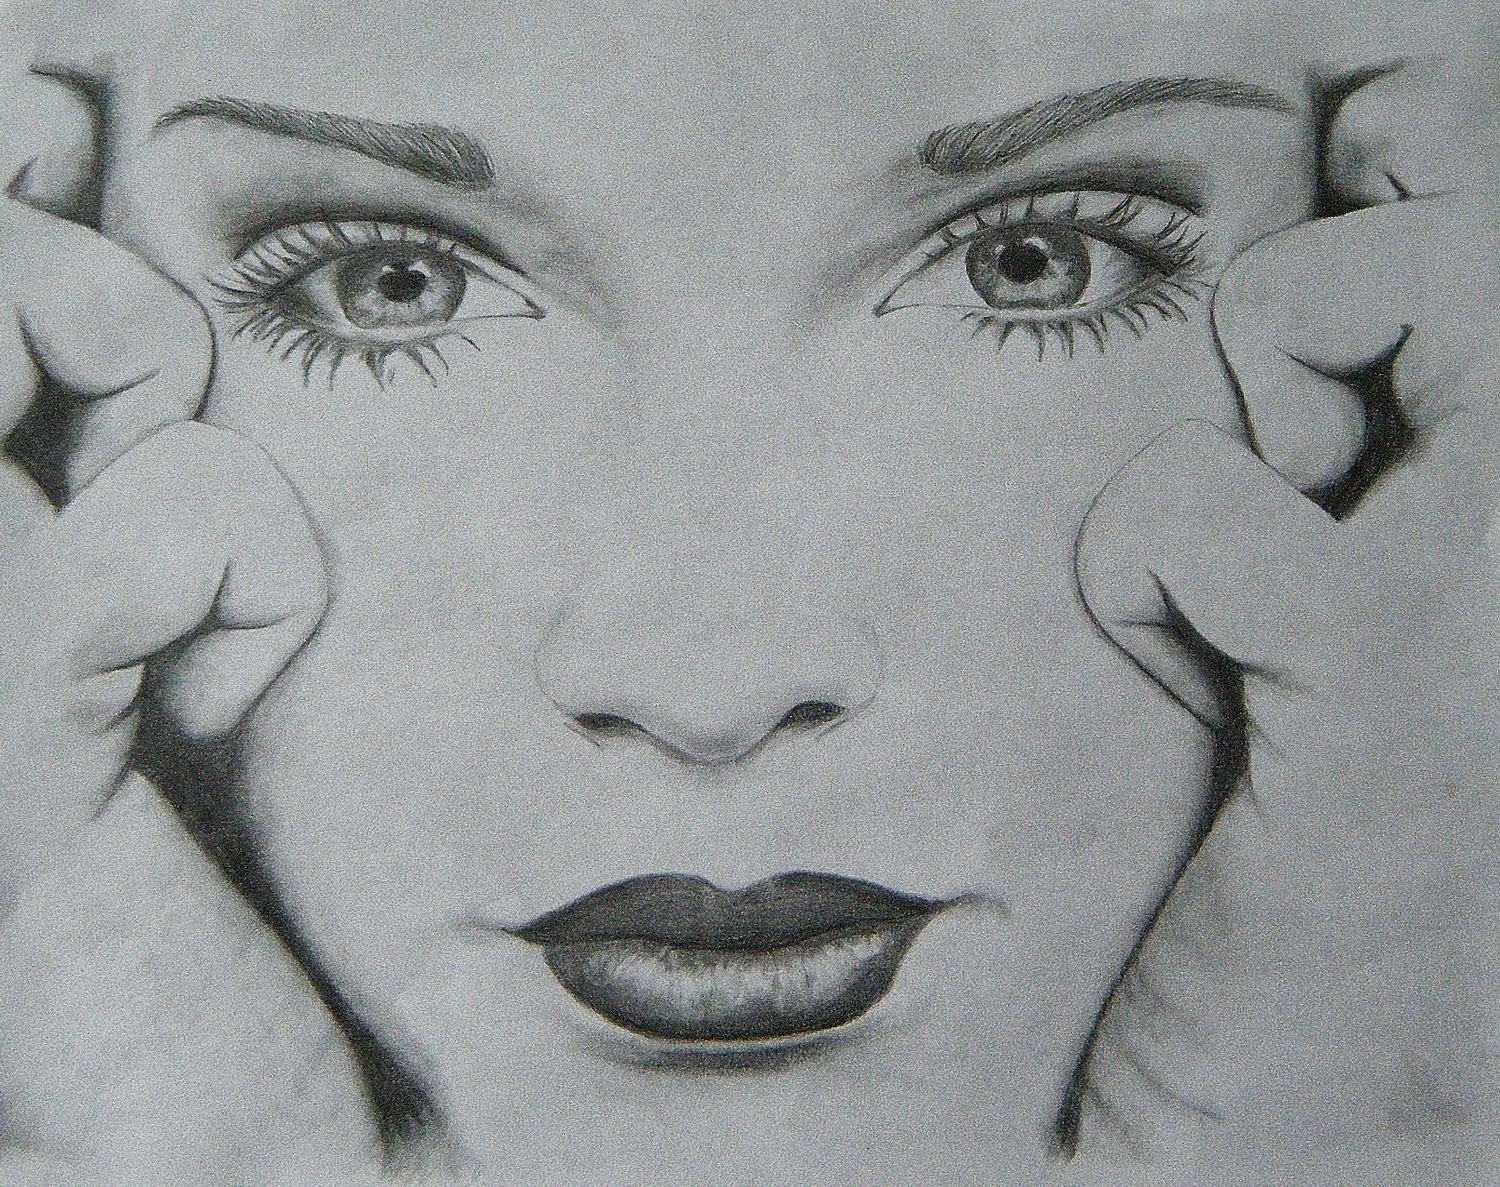 Simple Black And White Drawings Of Faces | World Of Example inside Simple Black And White Drawings Of Faces 30105